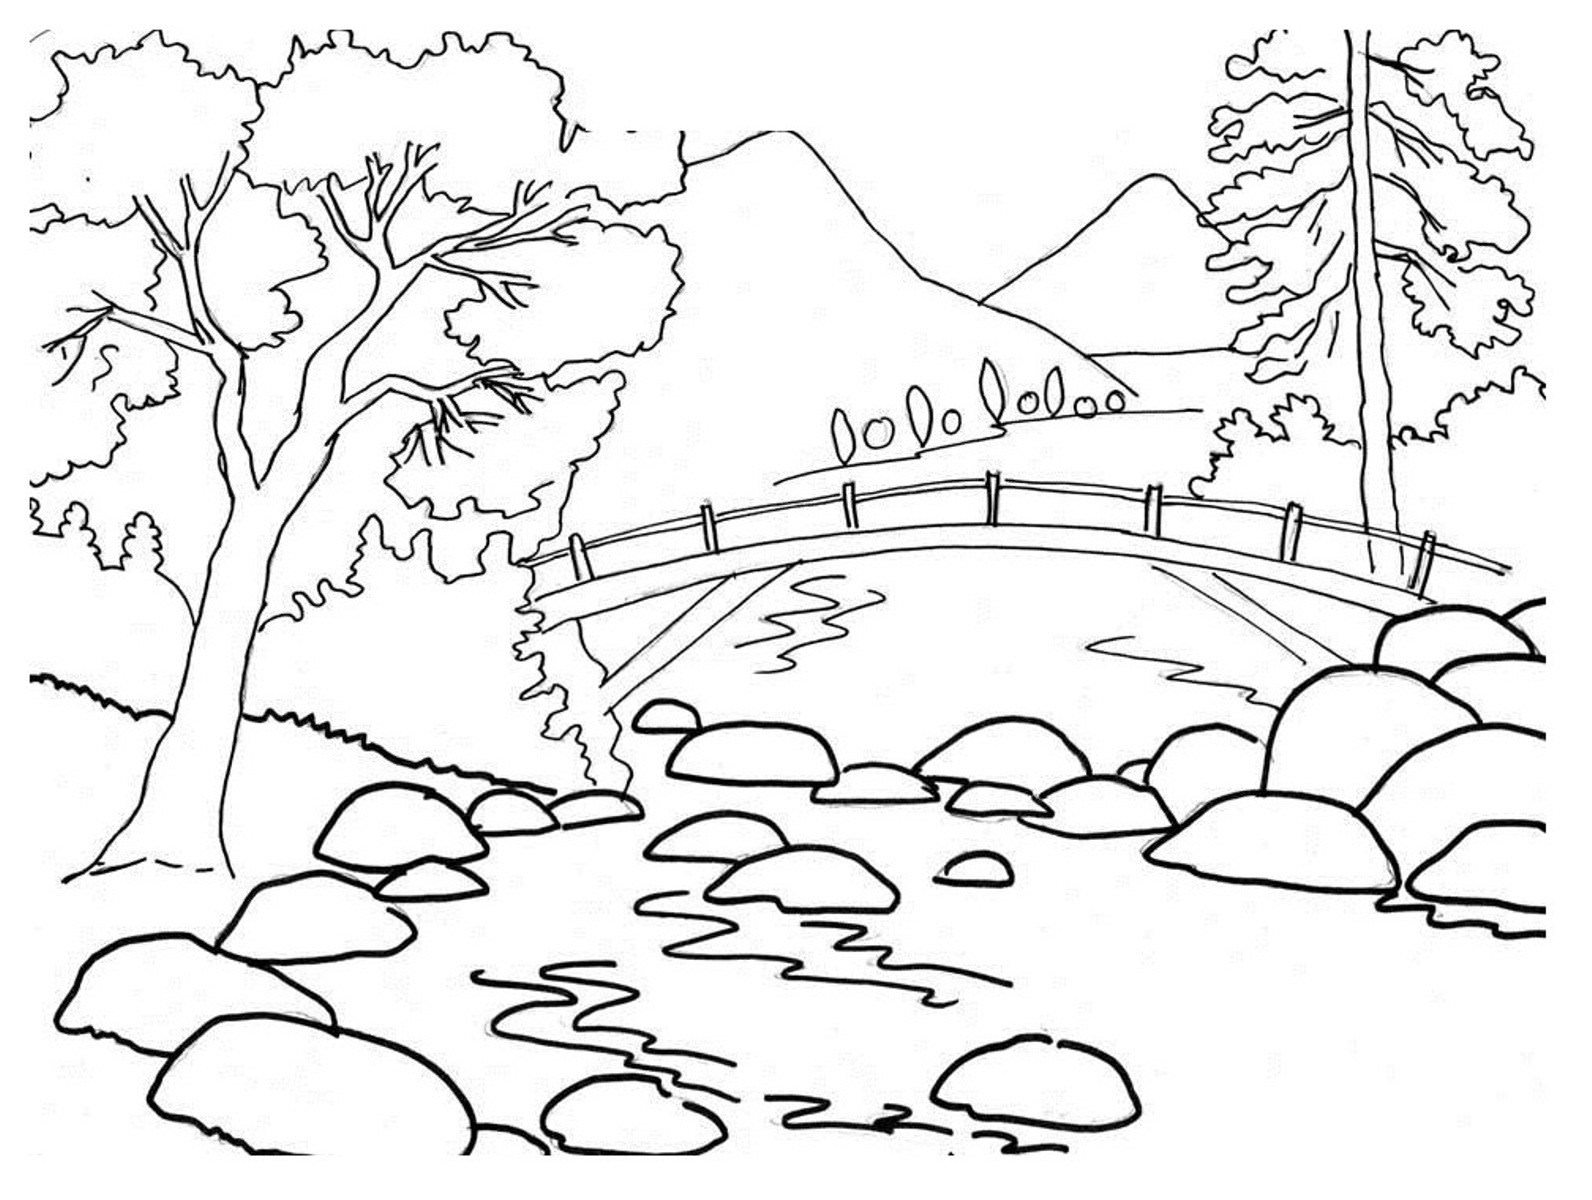 road coloring page shooting on the road coloring page free mafia coloring road coloring page